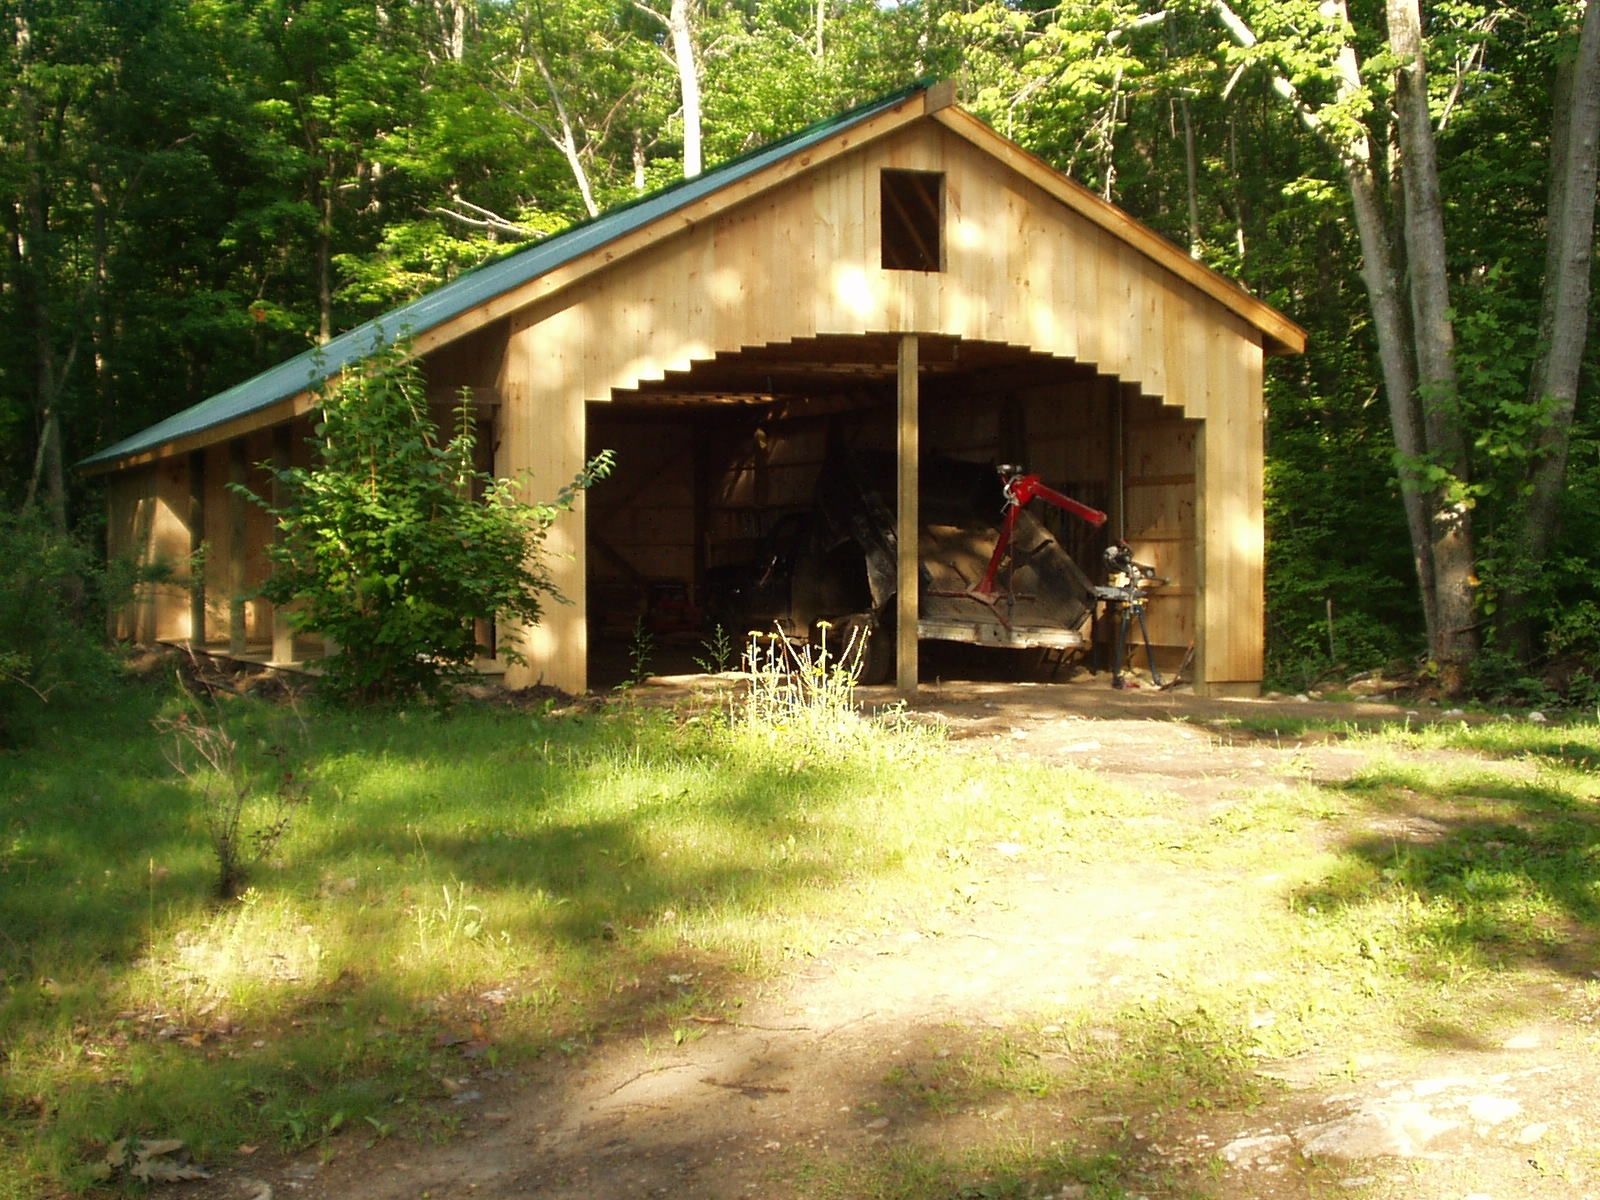 Build it yourself for dummies how to build a barn for Build your own barn online